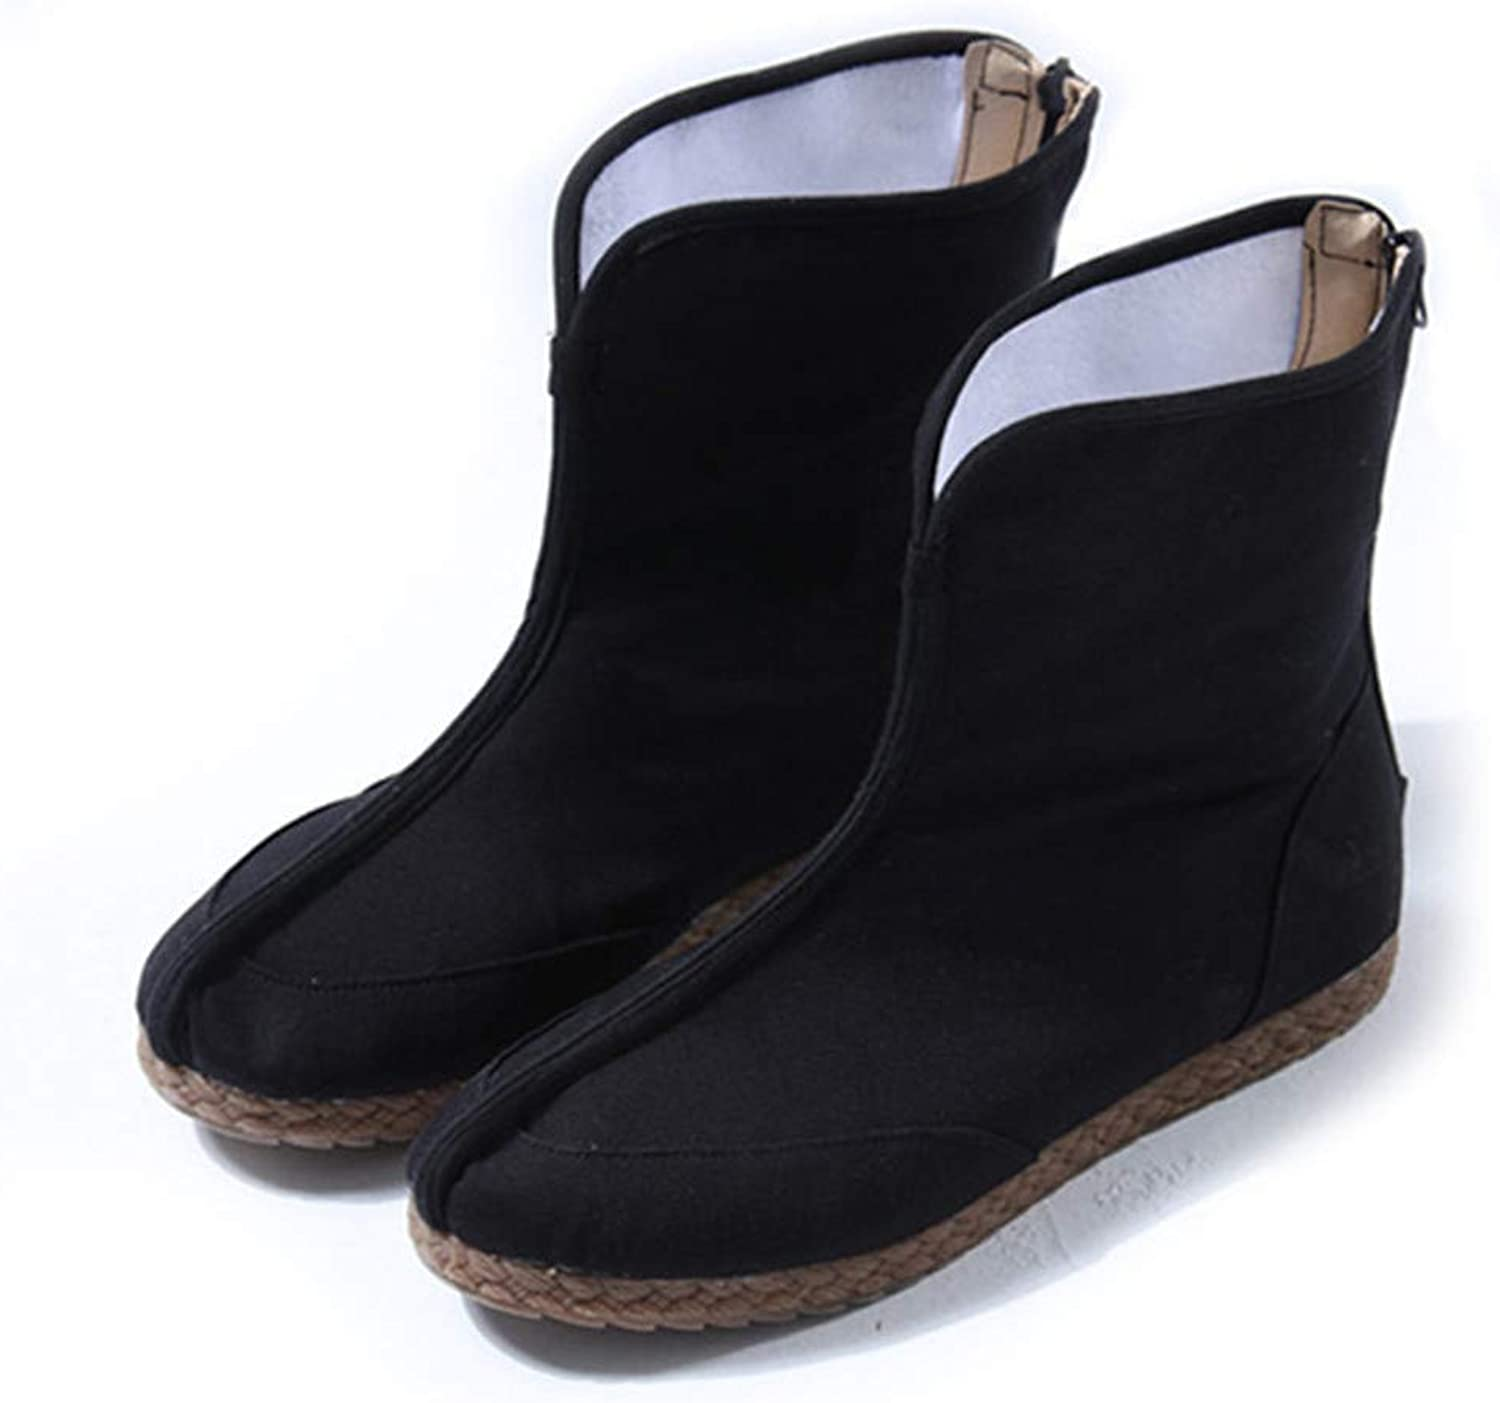 CAI&HONG-Domestics GCH Warm men's boots, autumn and winter, middle tube, comfortable